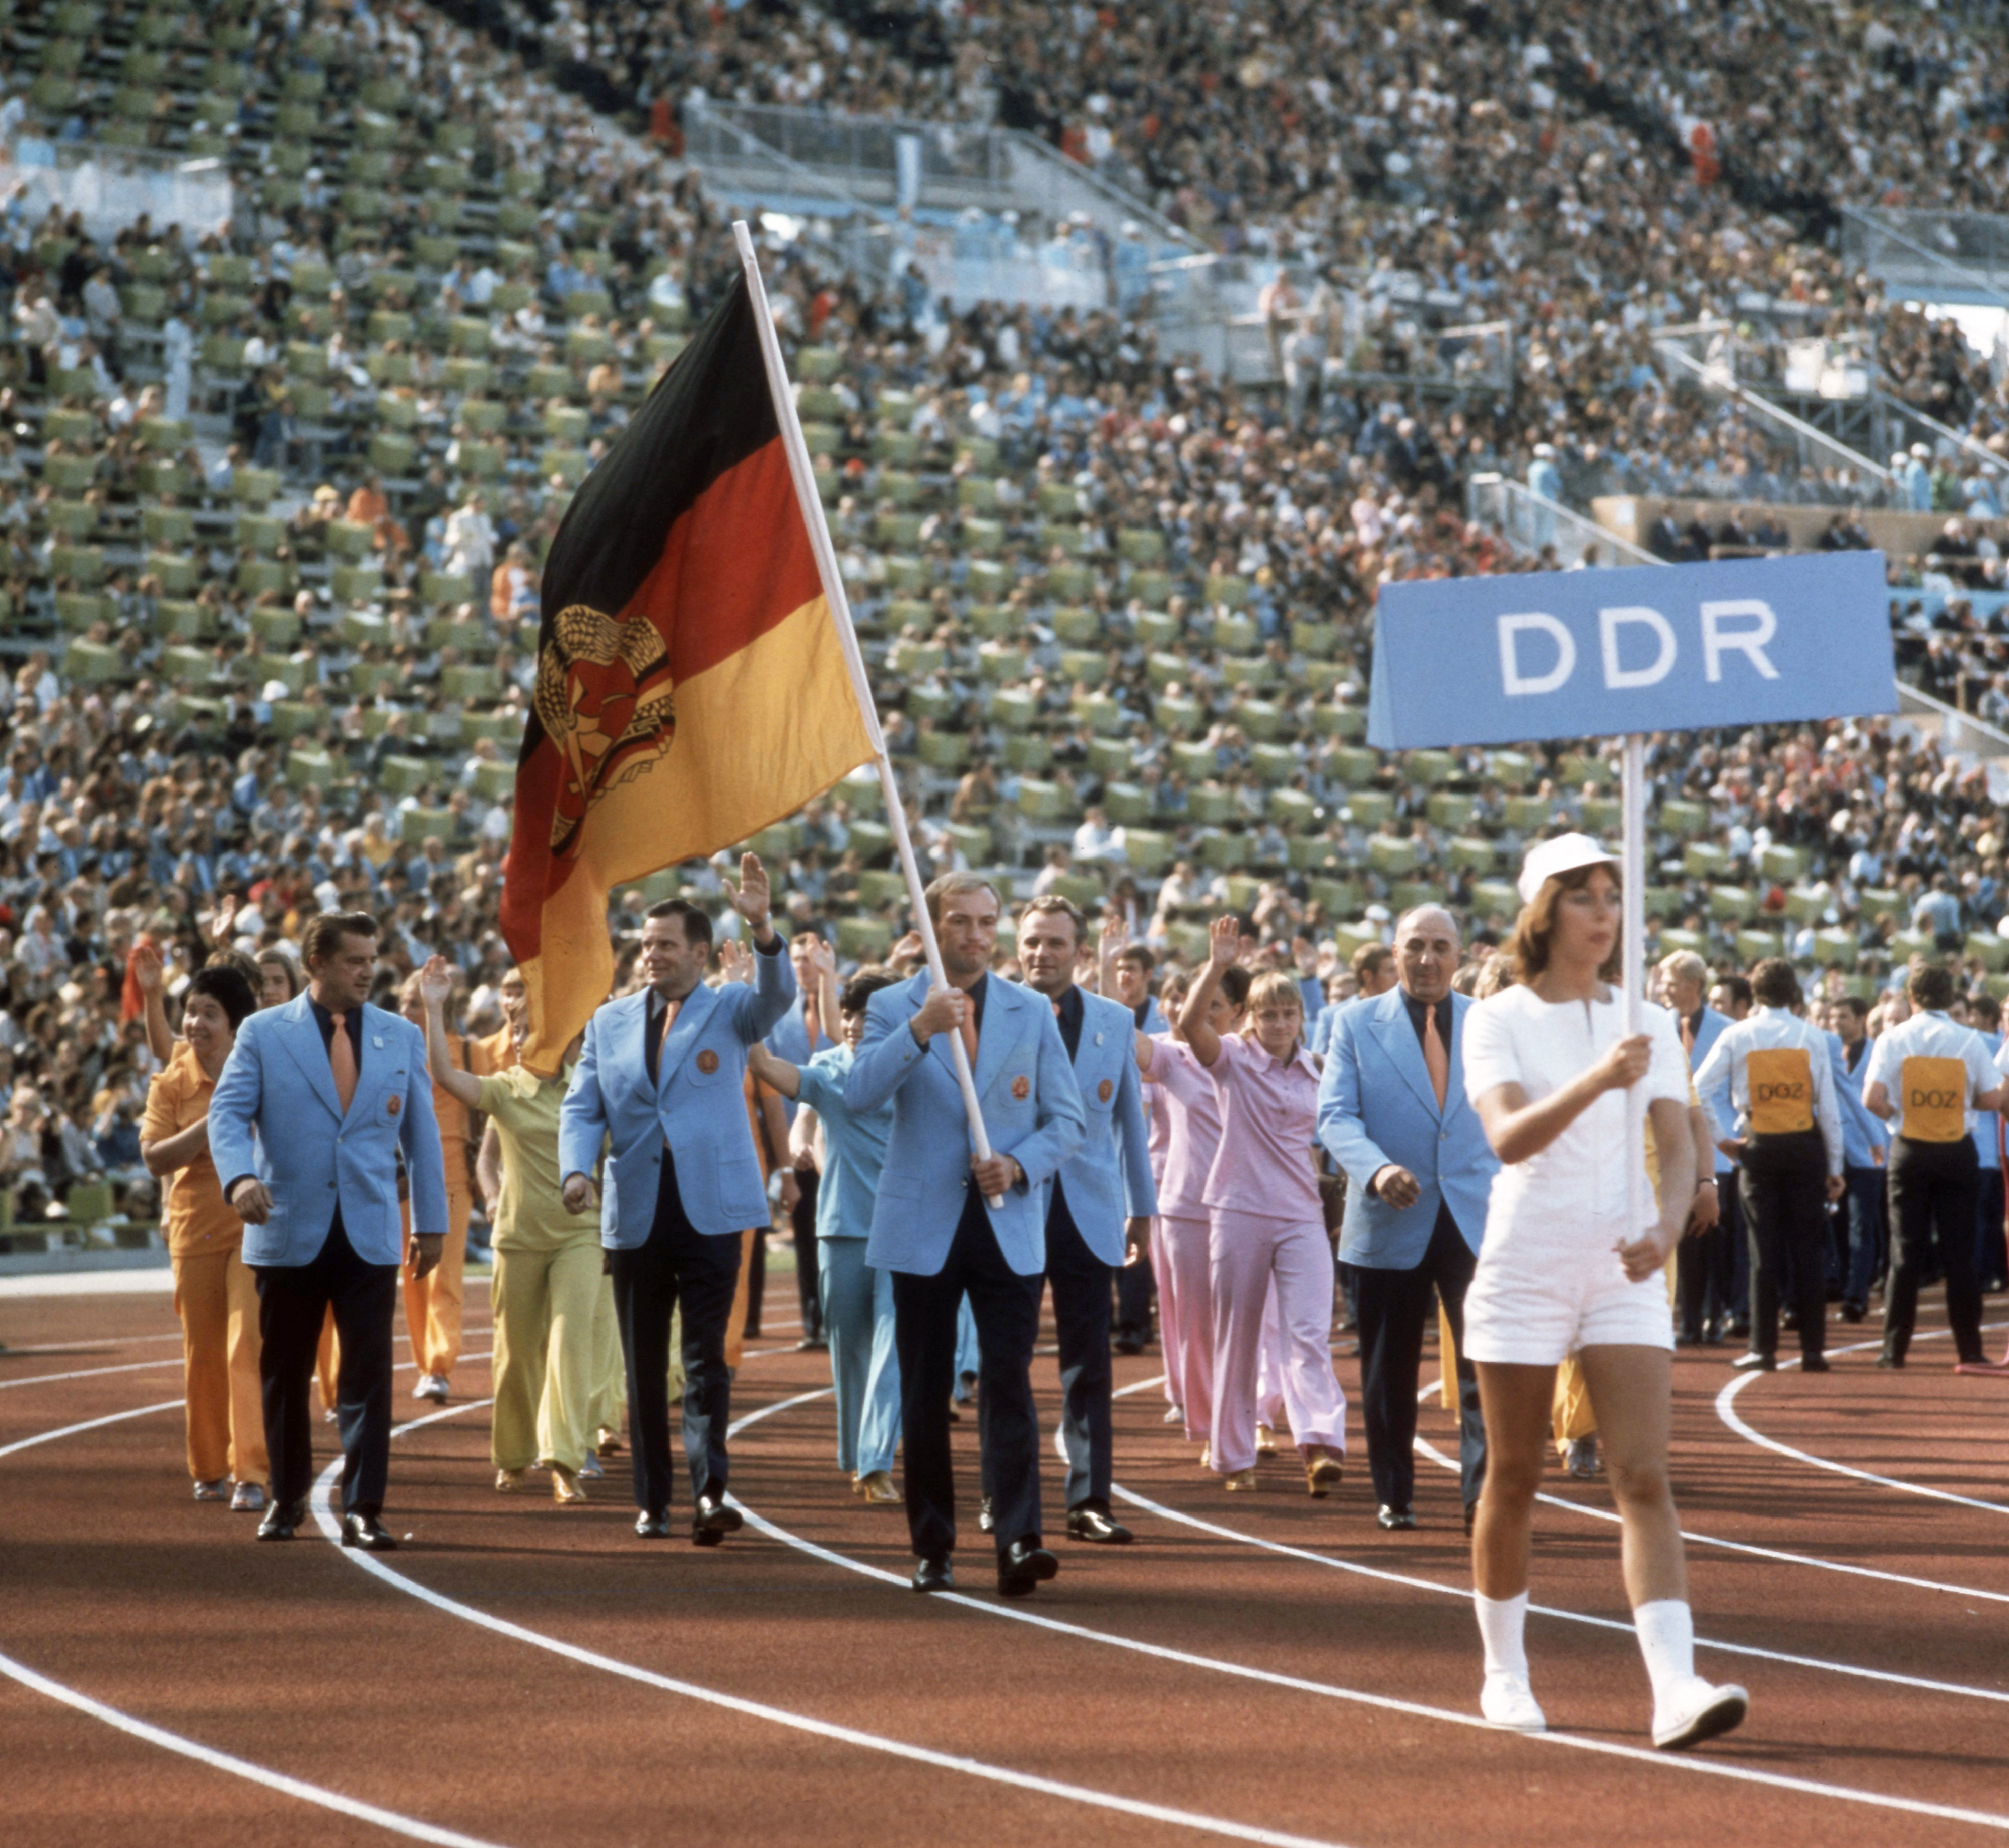 The GDR  (German Democratic Republic) team holding the flag featuring the hammer and compass surrounded by a ring of rye. As a separate team, they marched with this version of the flag at the 1972 opening ceremony. (Credit: Werner Schulze/Ullstein Bild via Getty Images)